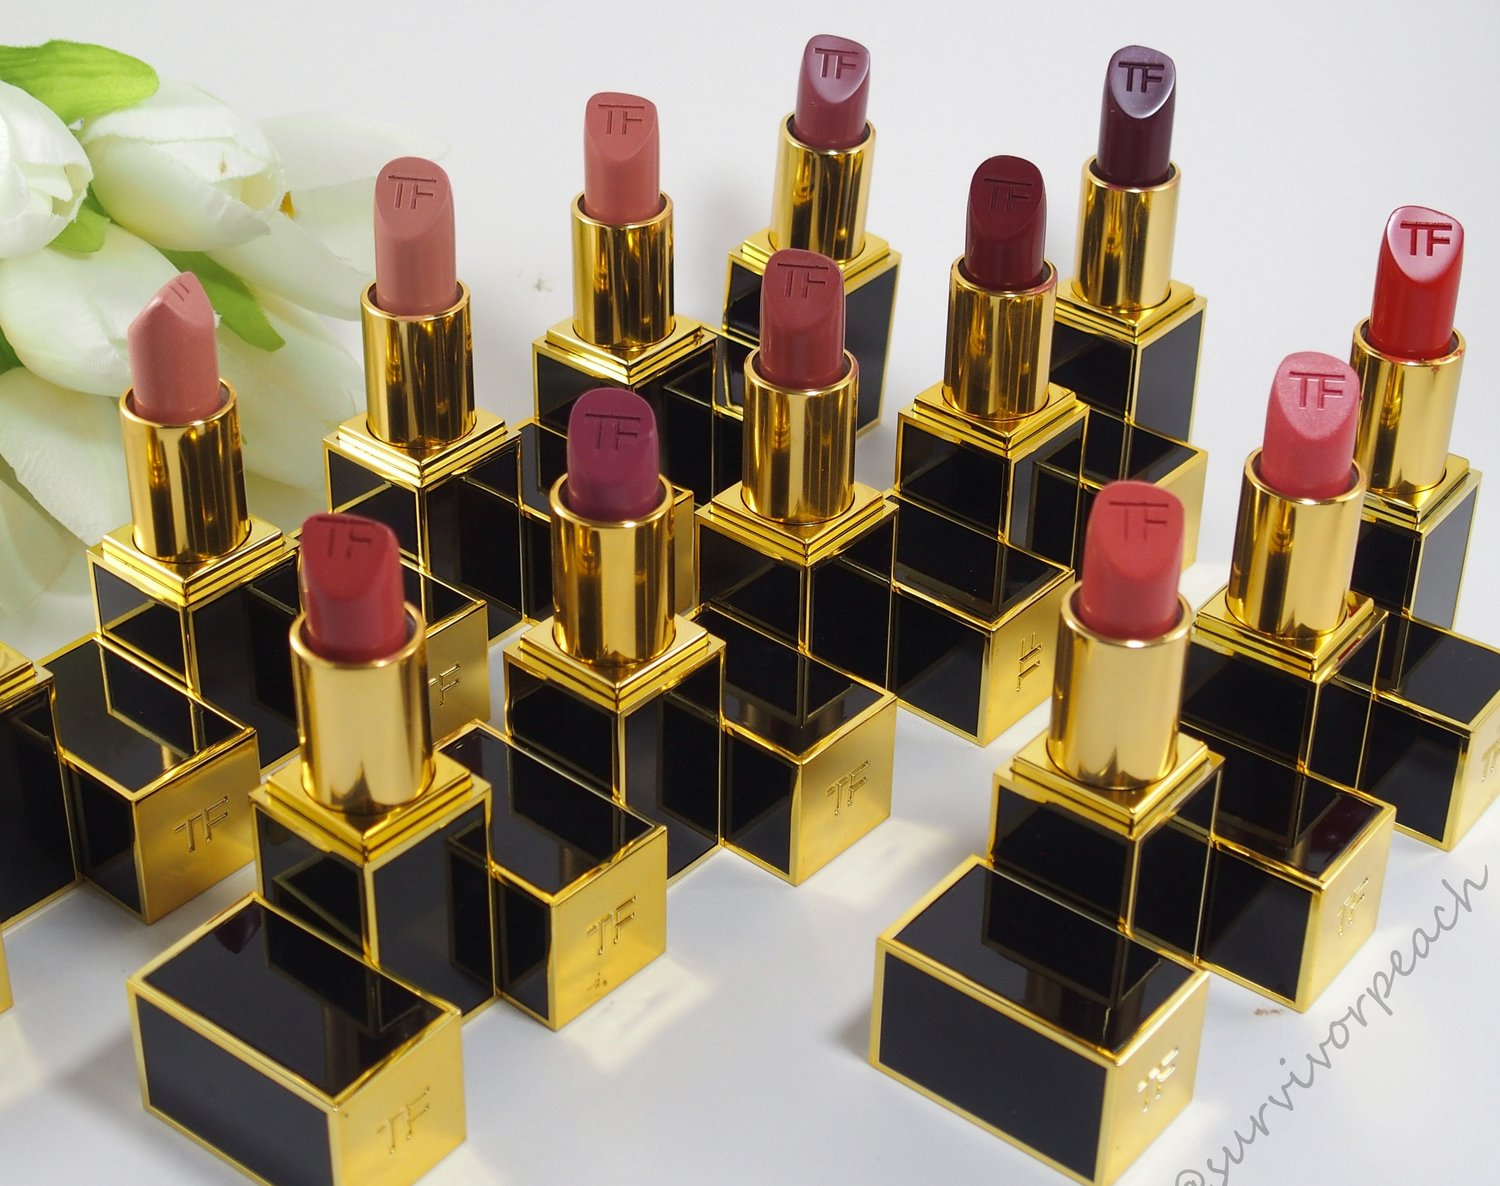 Complete Tom Ford lipsticks collection